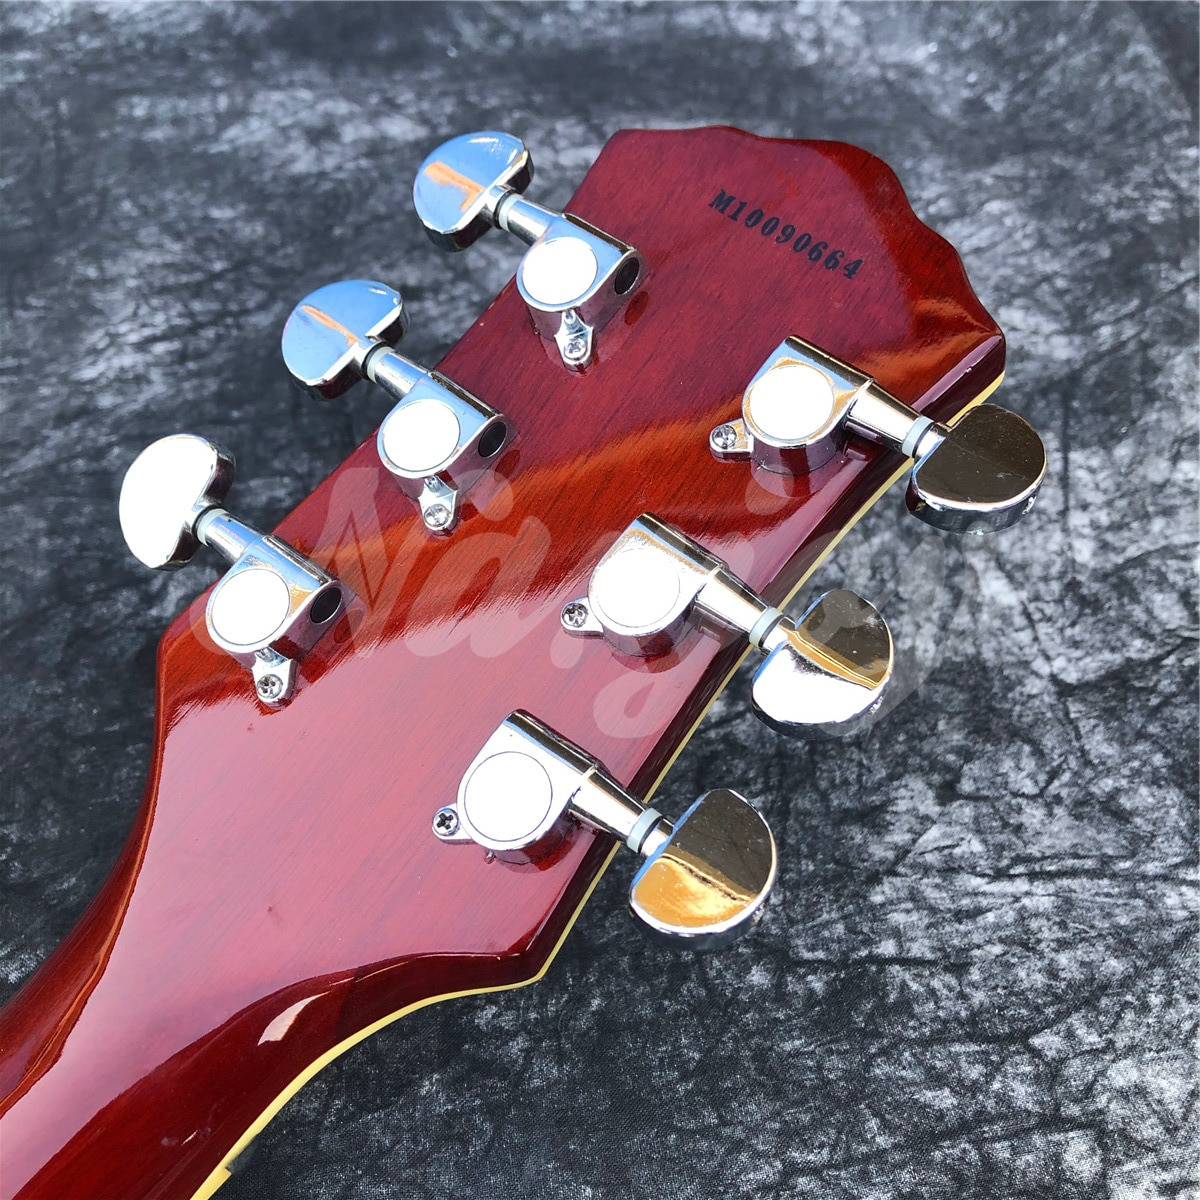 2021 New Glossy Orange Flame Maple 6 String Electric Guitar,Solid Mahogany Body Guitar,Real Photos enlarge